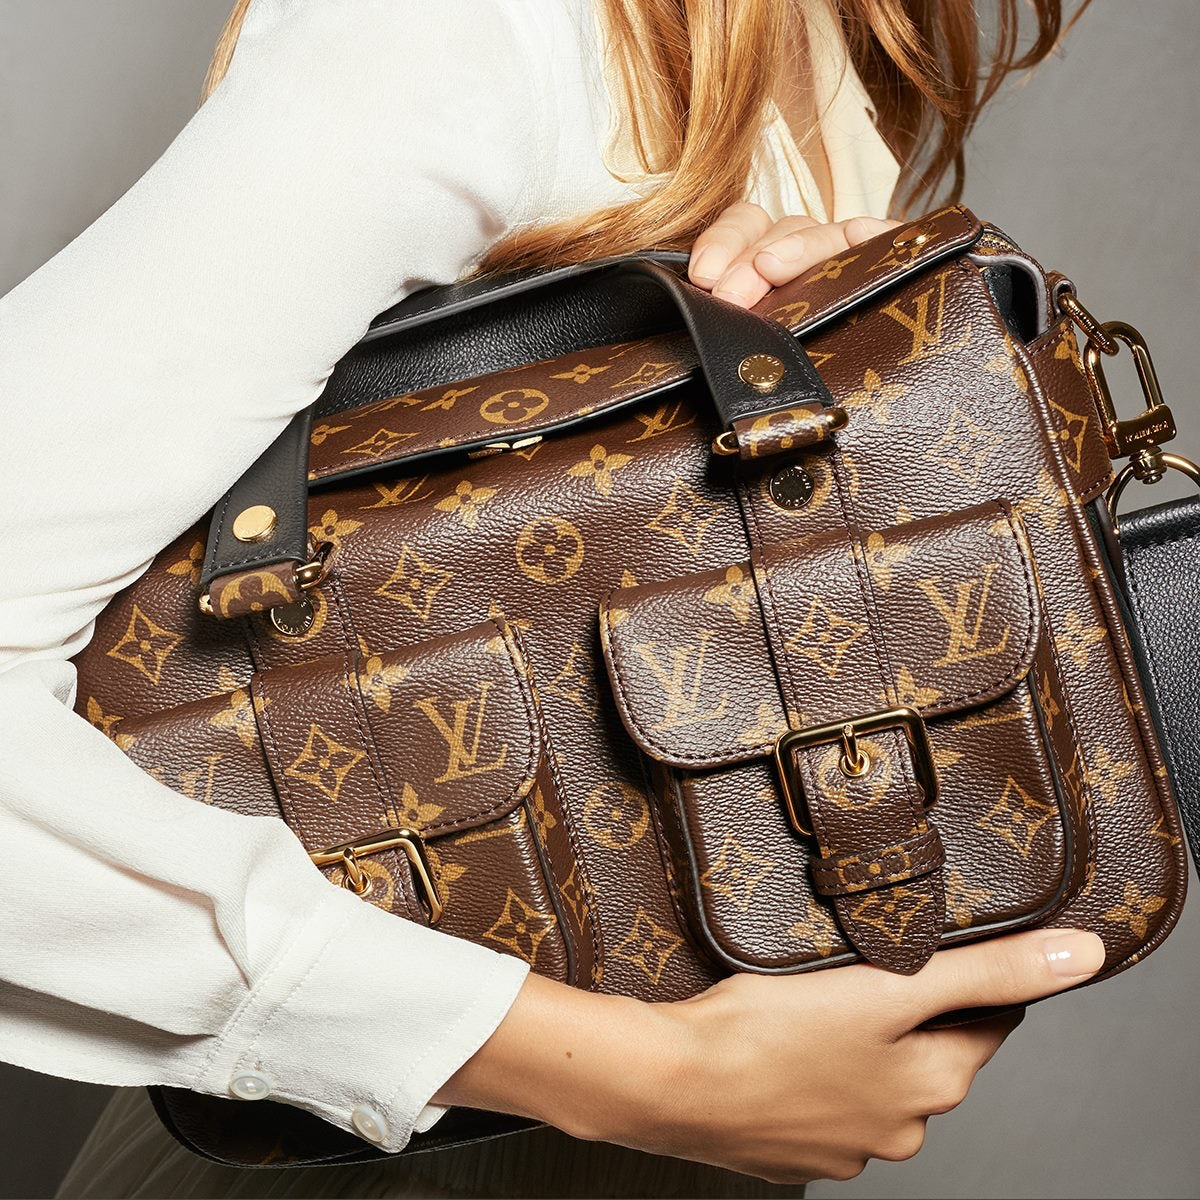 Source: Louis Vuitton